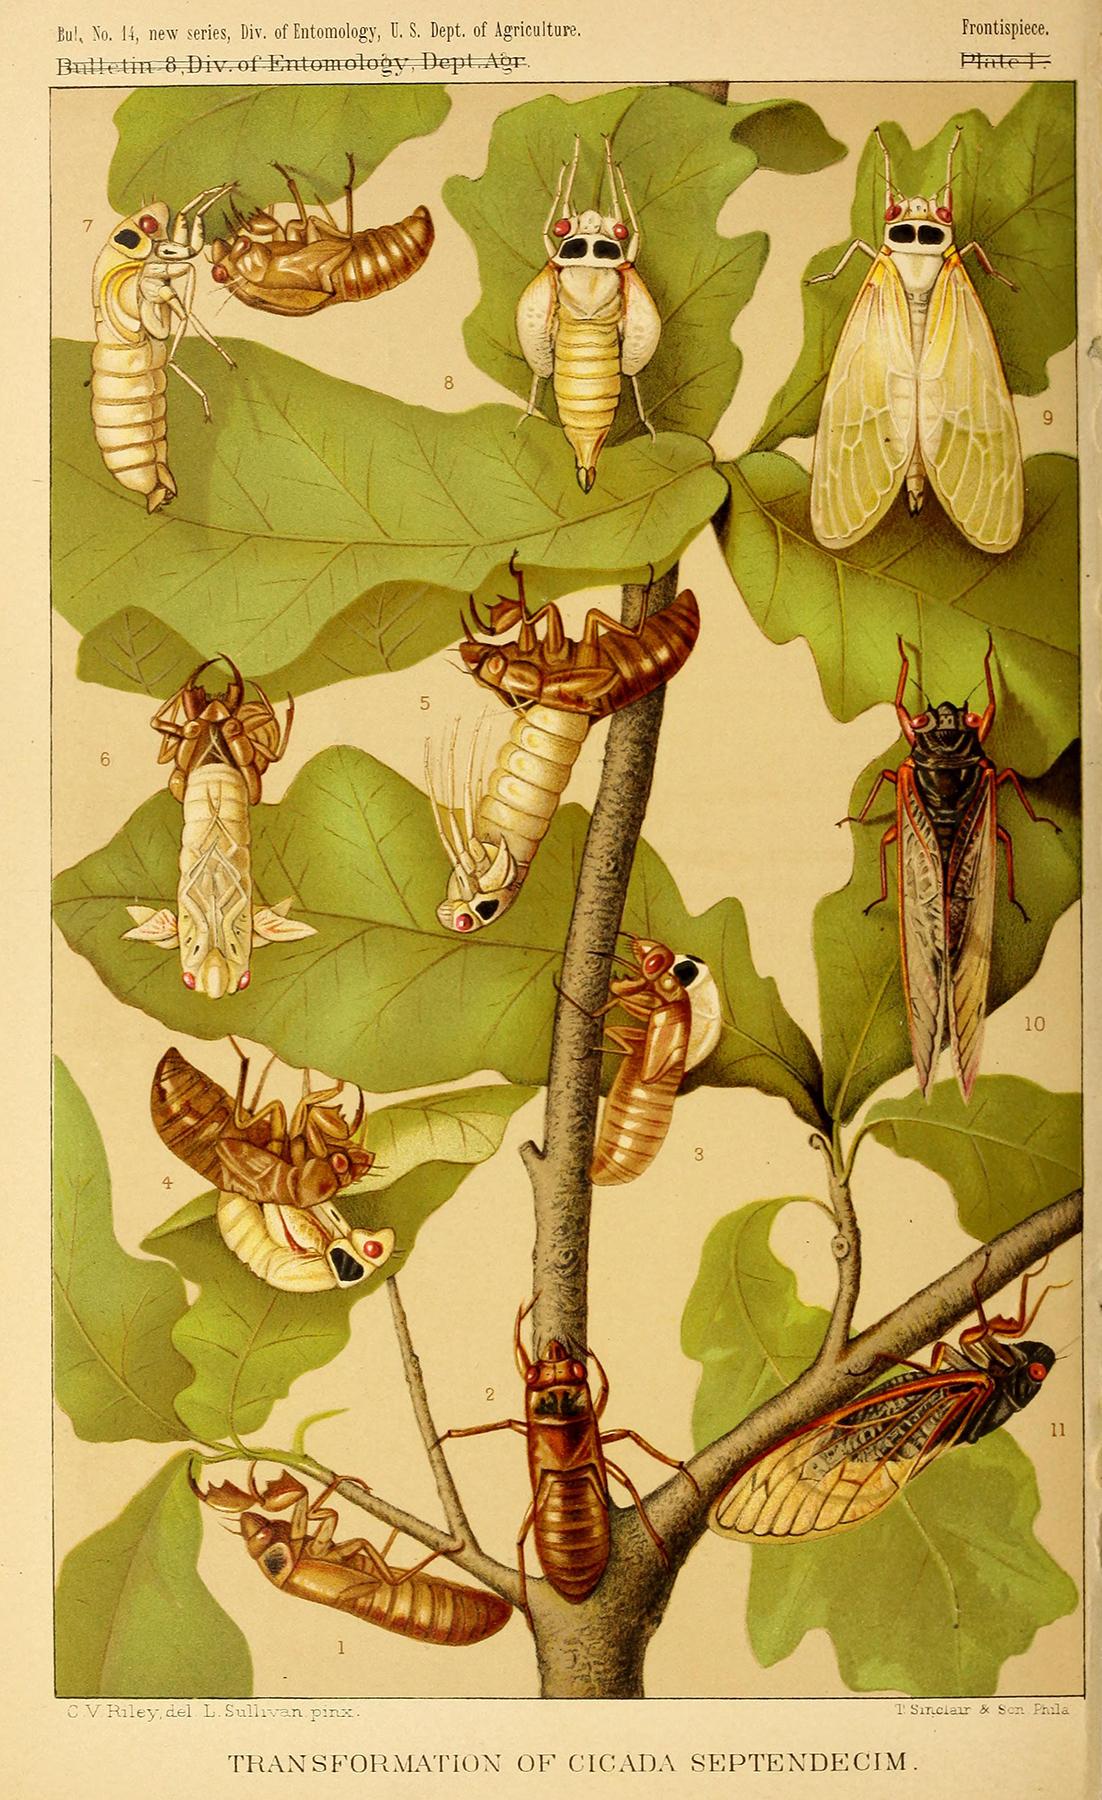 The periodical cicada in various life stages.